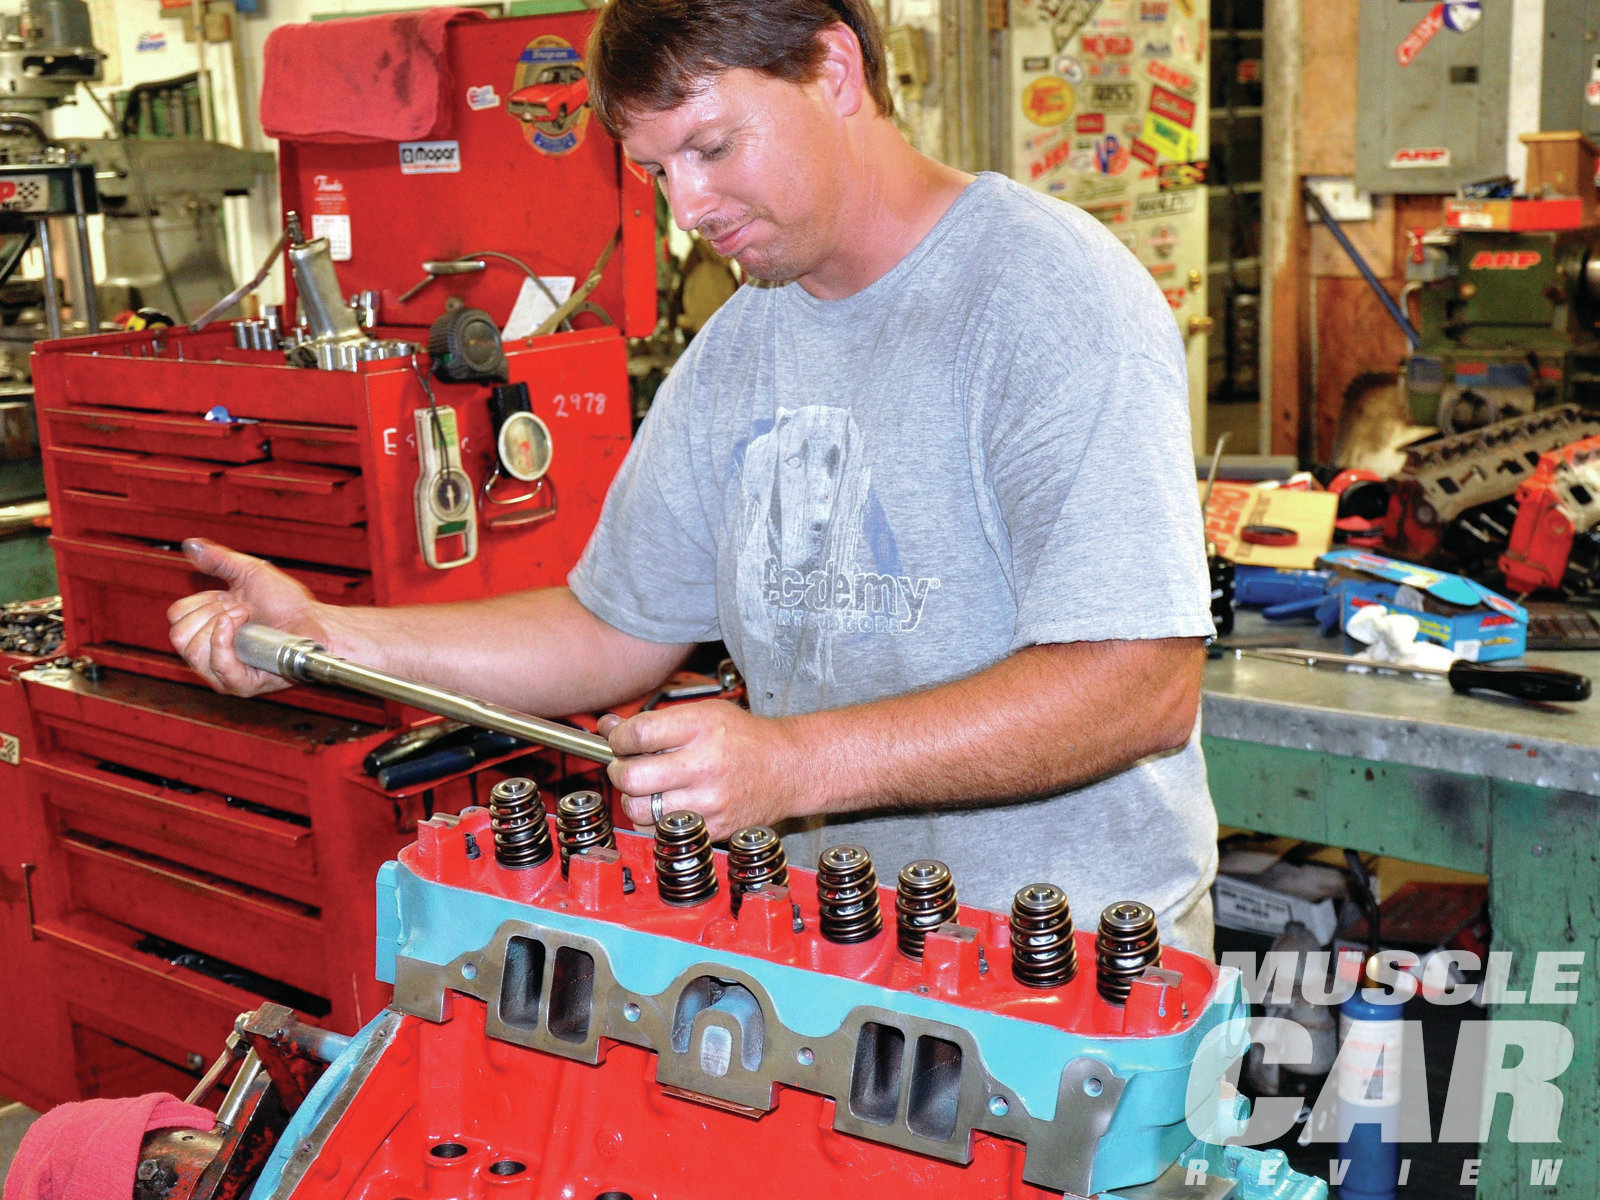 11 ARP head bolts were torqued to 80 lb-ft. If you are using OE bolts, torque the heads to 70 lb-ft. Check with your engine builder as to his recommendation for your application. (It doesn't hurt to go back and torque those bolts after startup and dyno pulls. I waited a couple days after dyno testing and torqued the heads again.)